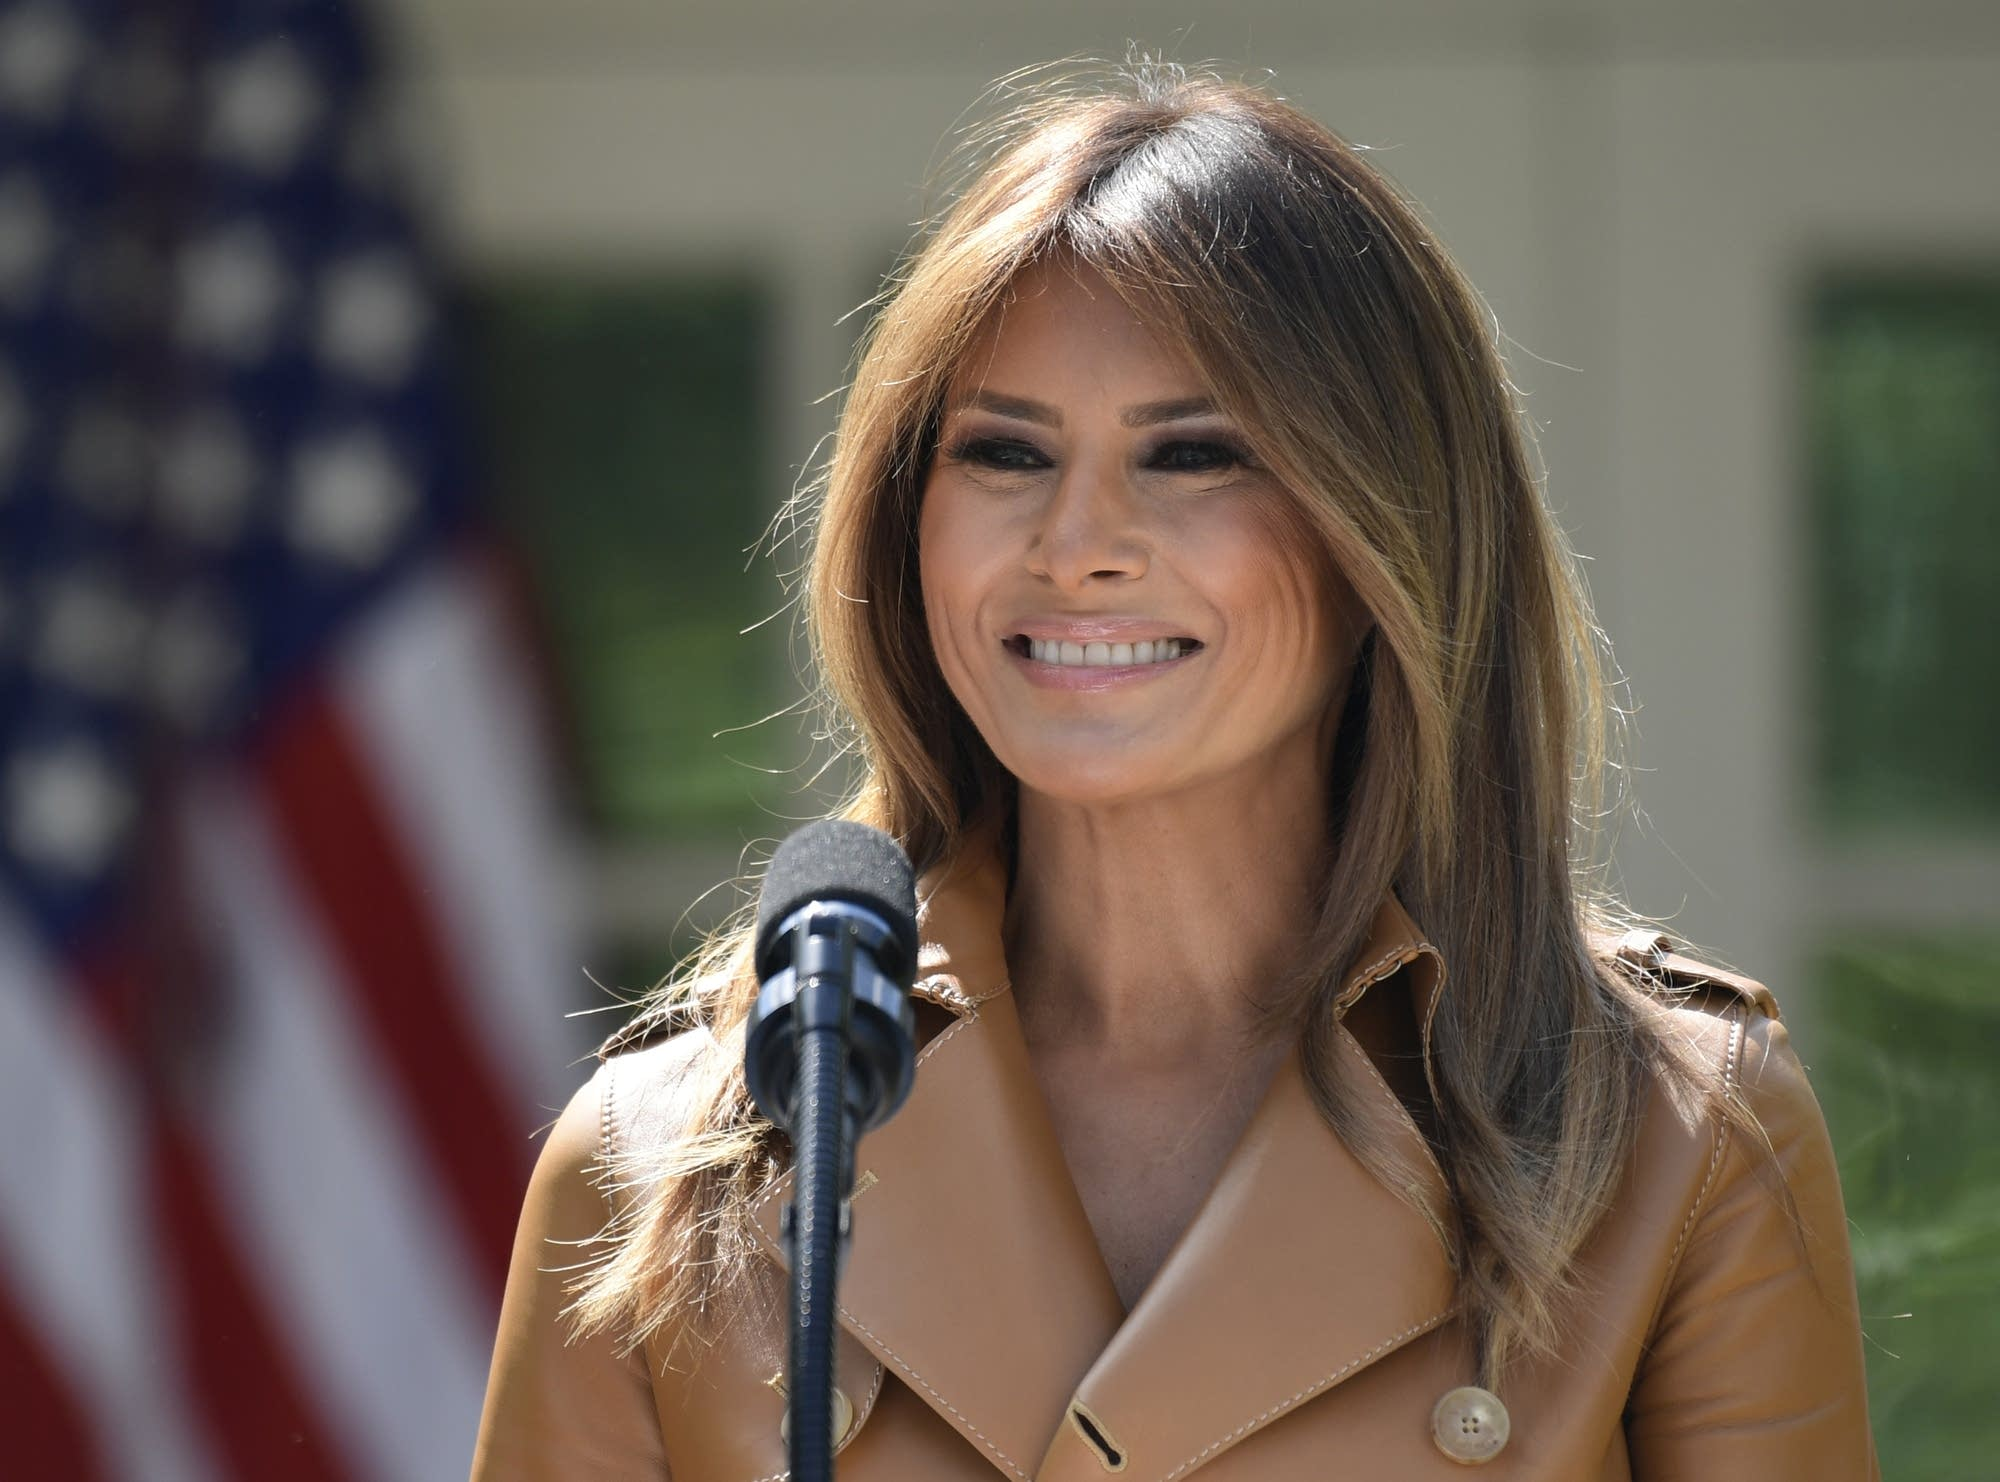 First lady Melania Trump speaks at an event in the Rose Garden.